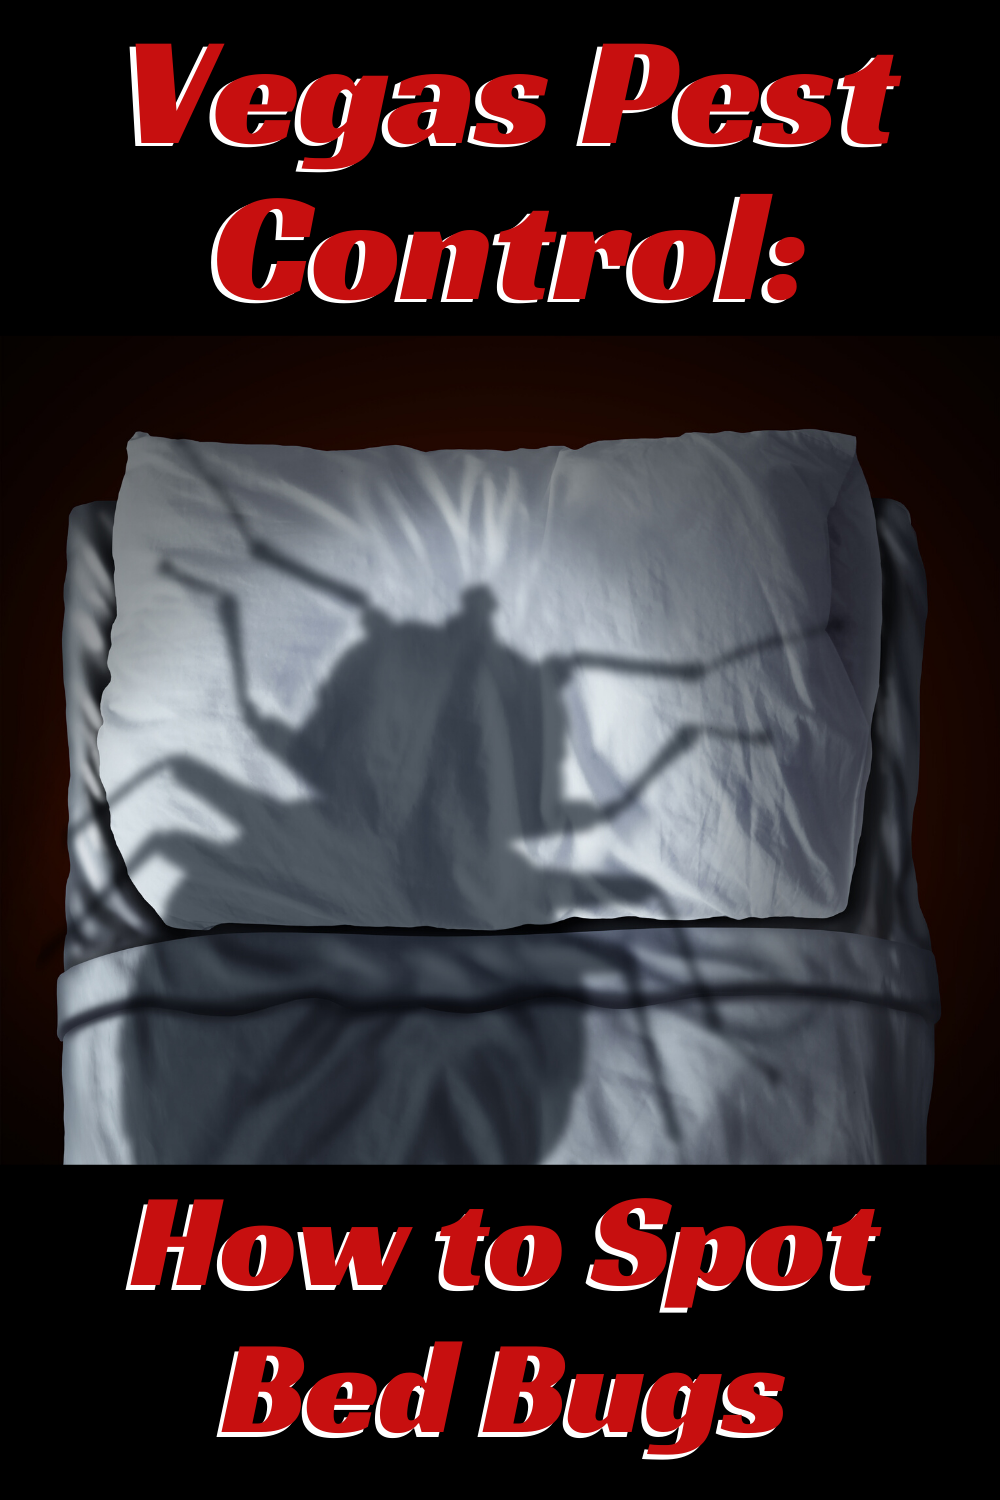 Vegas Pest Control How to Spot Bed Bugs in 2020 Bed